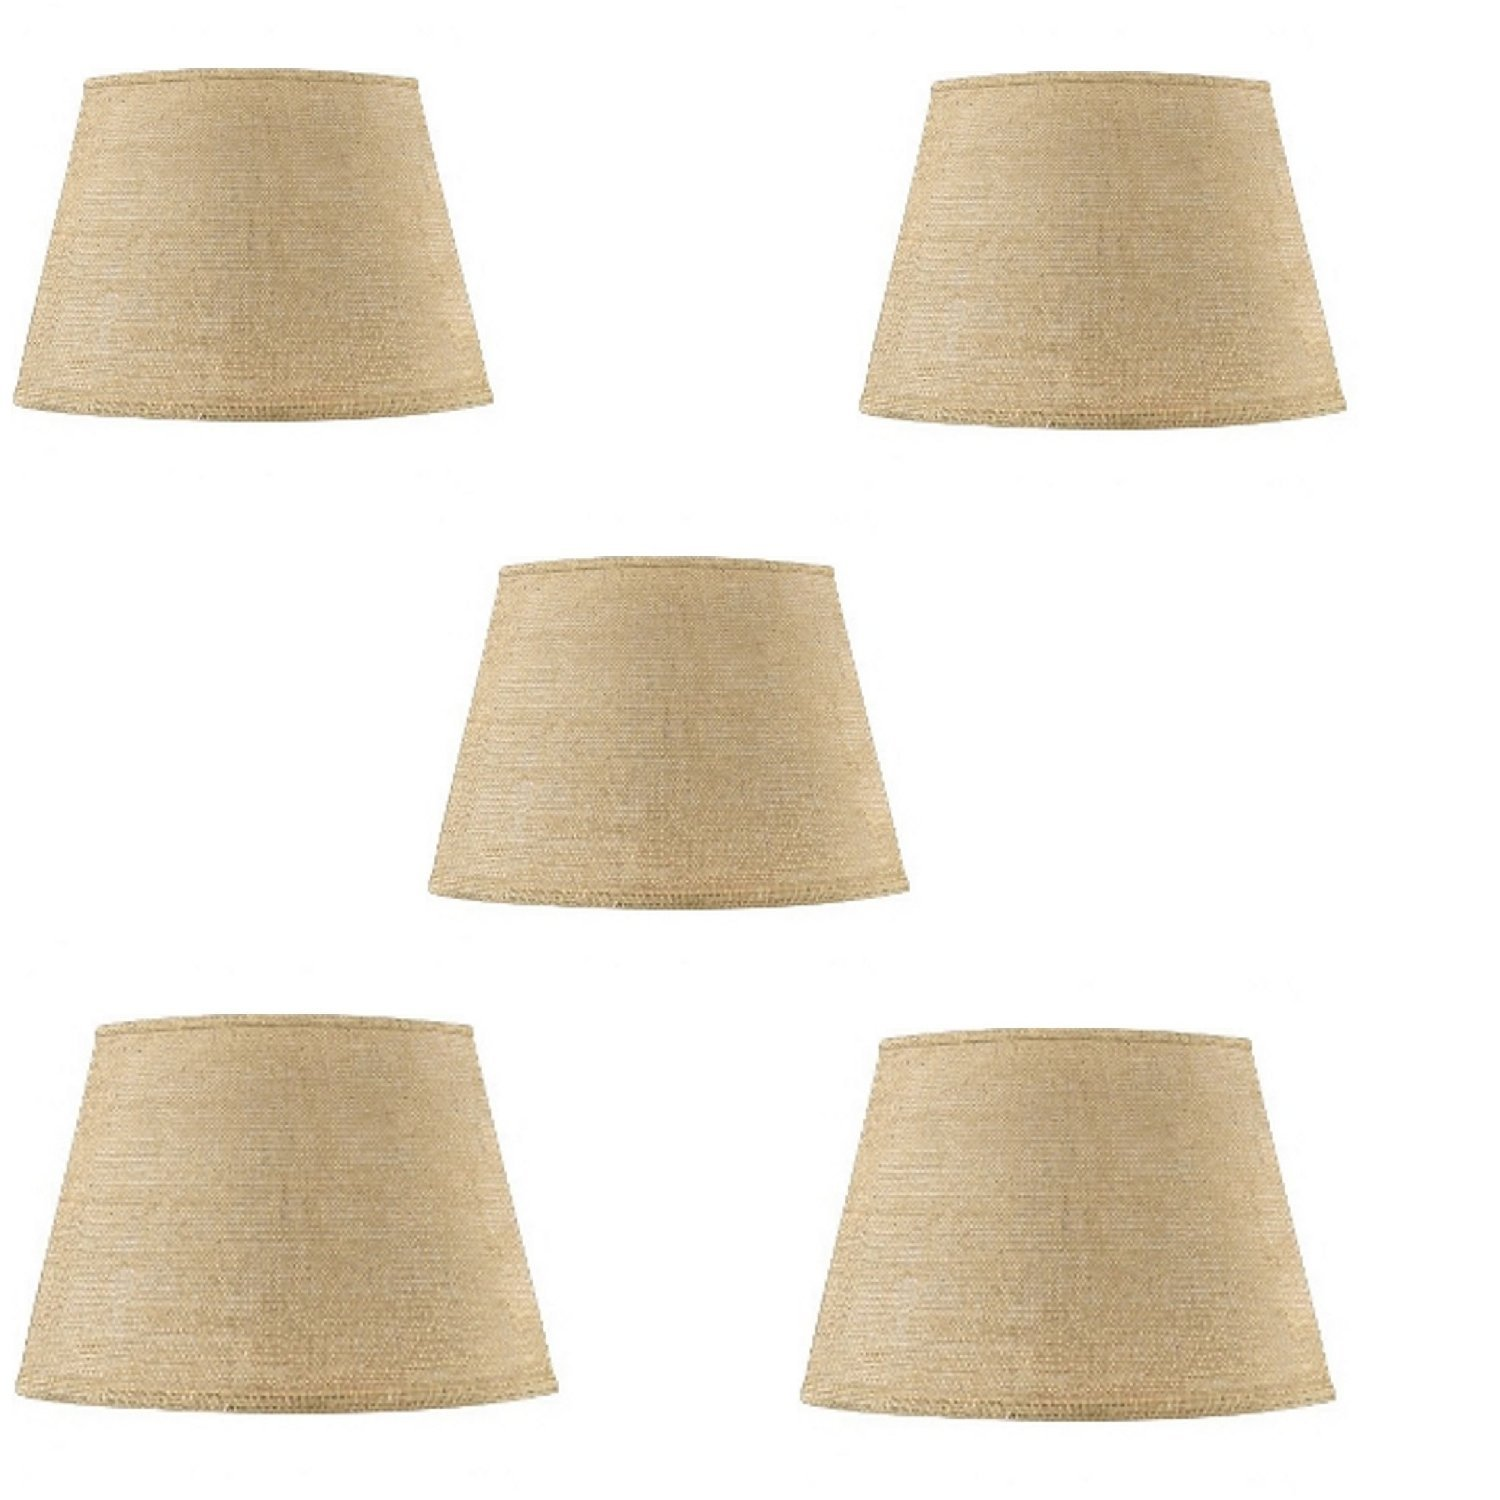 Cheap burlap chandelier shades find burlap chandelier shades deals get quotations upgradelights set of five 6 inch european drum style chandelier lamp shades in natural burlap fabric aloadofball Image collections